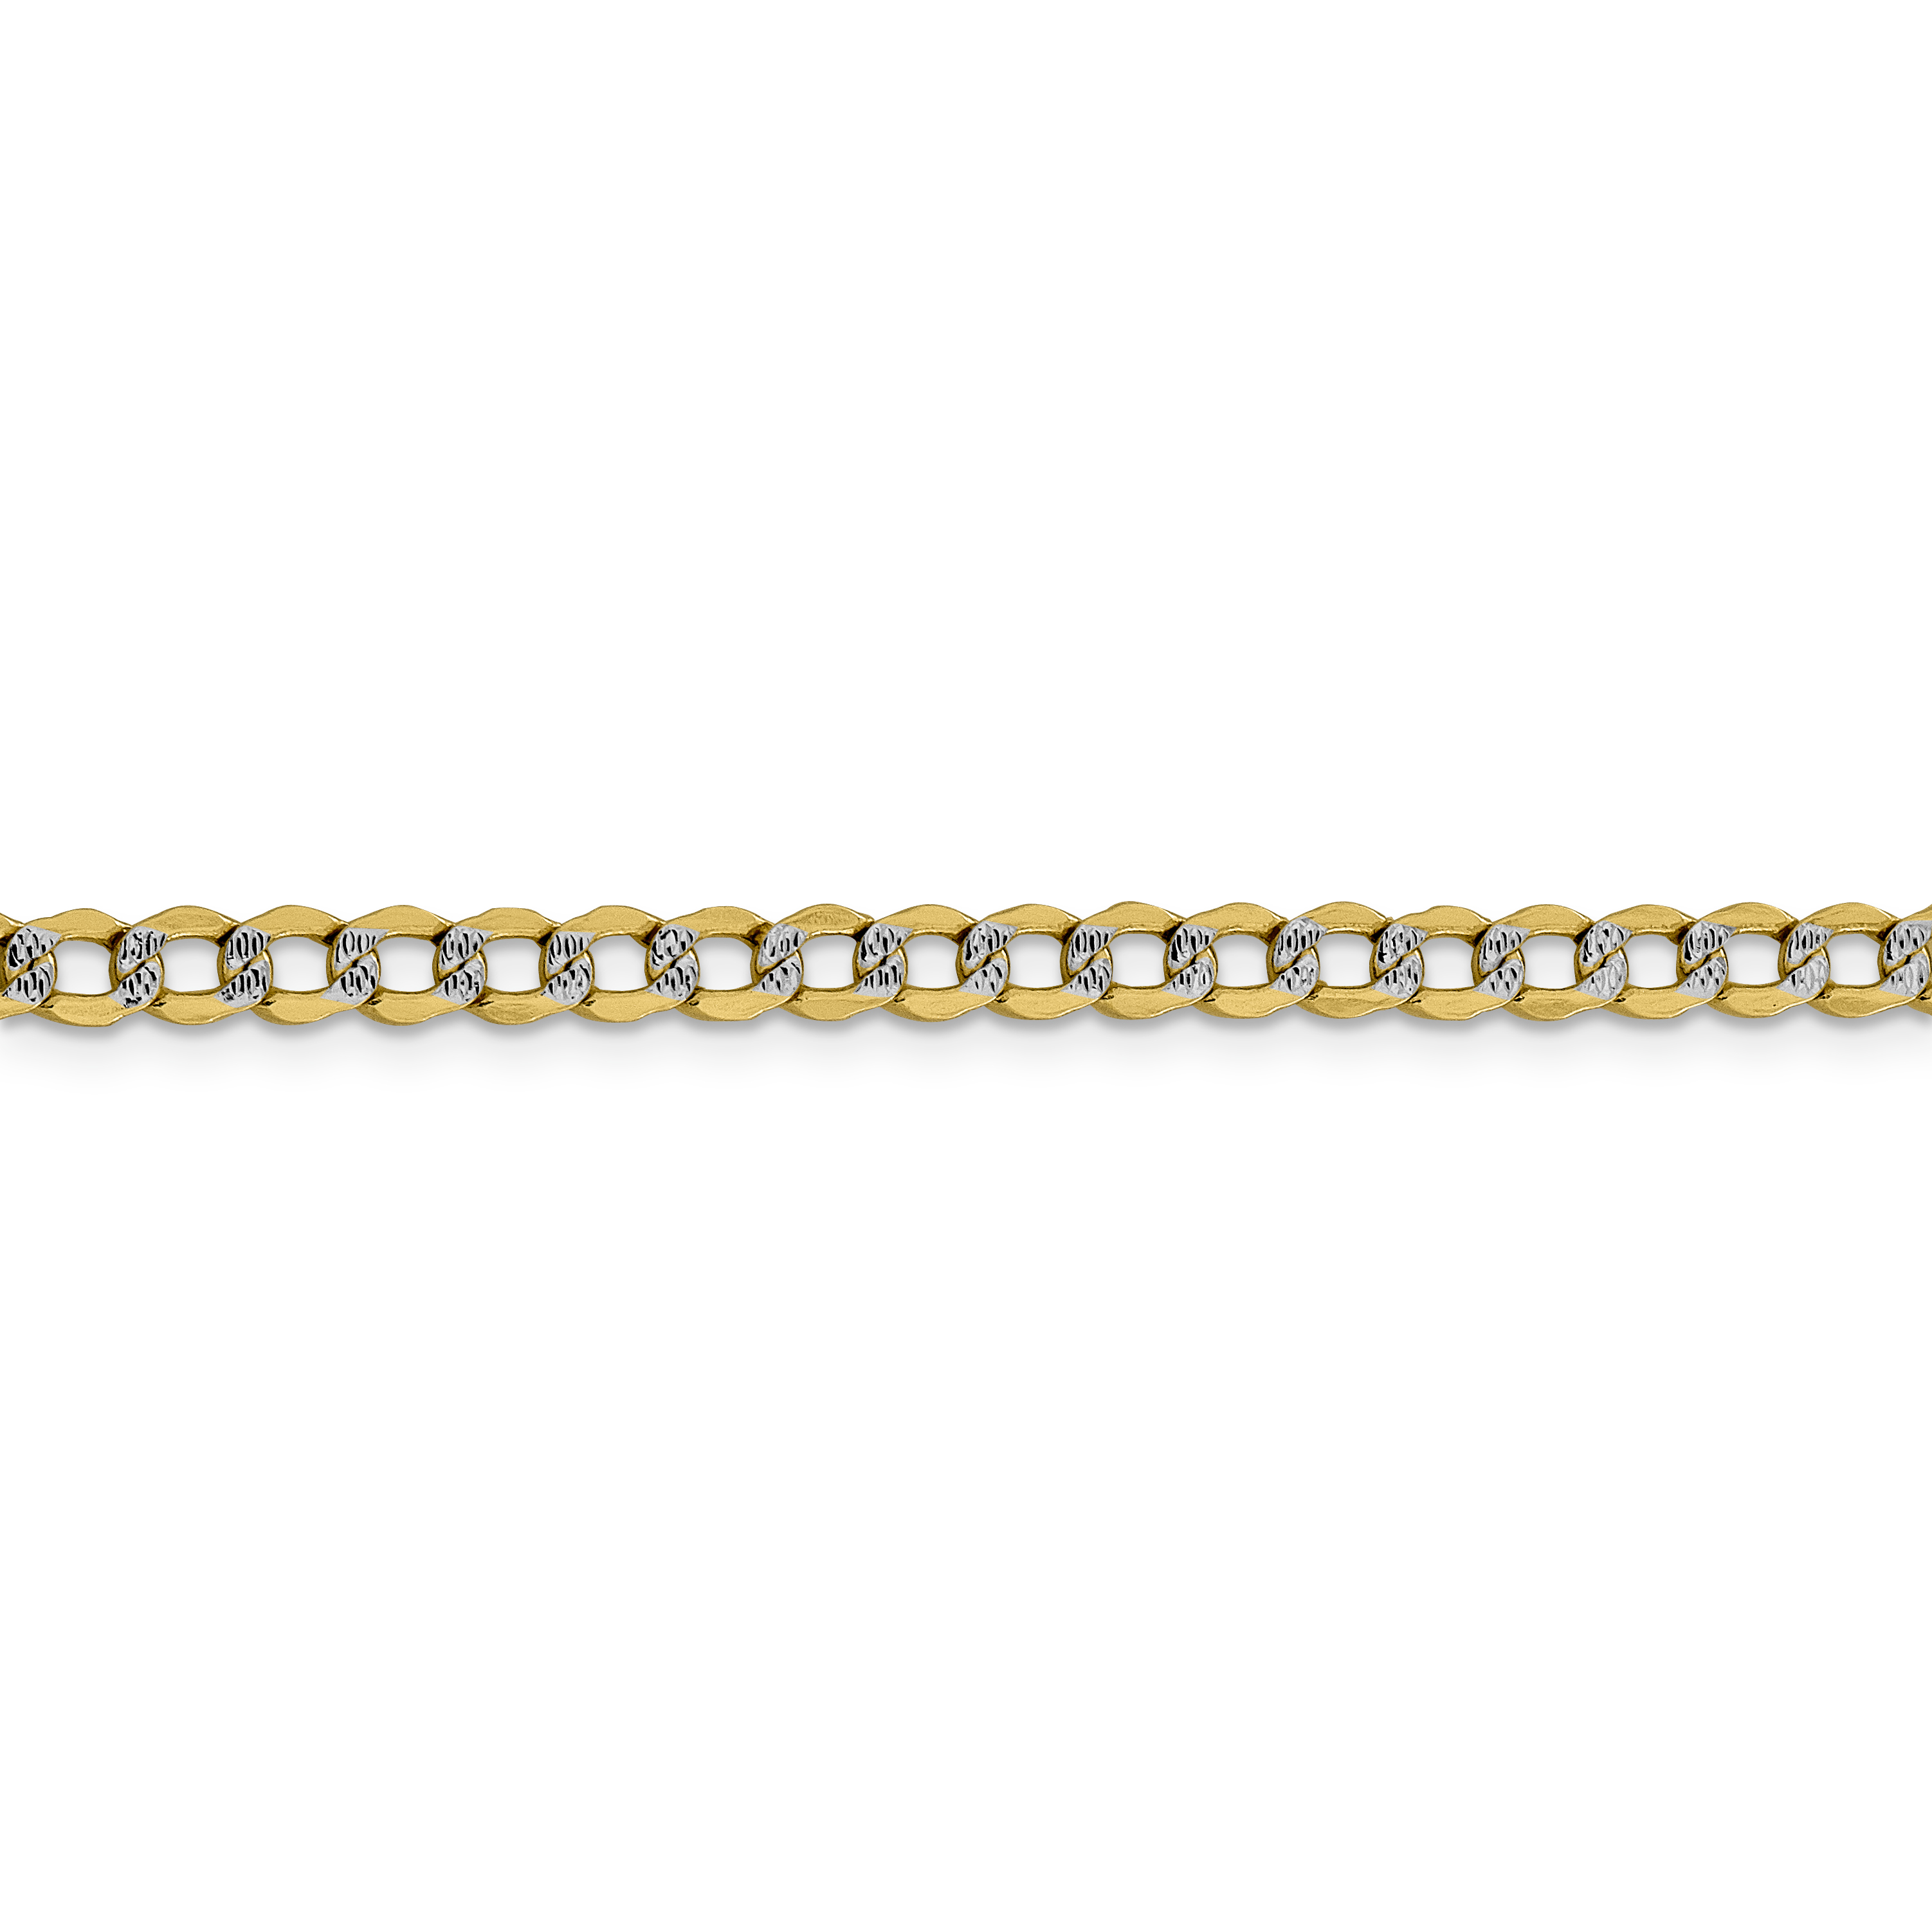 14k Yellow Gold 4.3mm Link Curb Chain Necklace 20 Inch Pendant Charm Pav? Fine Jewelry Gifts For Women For Her - image 2 of 5